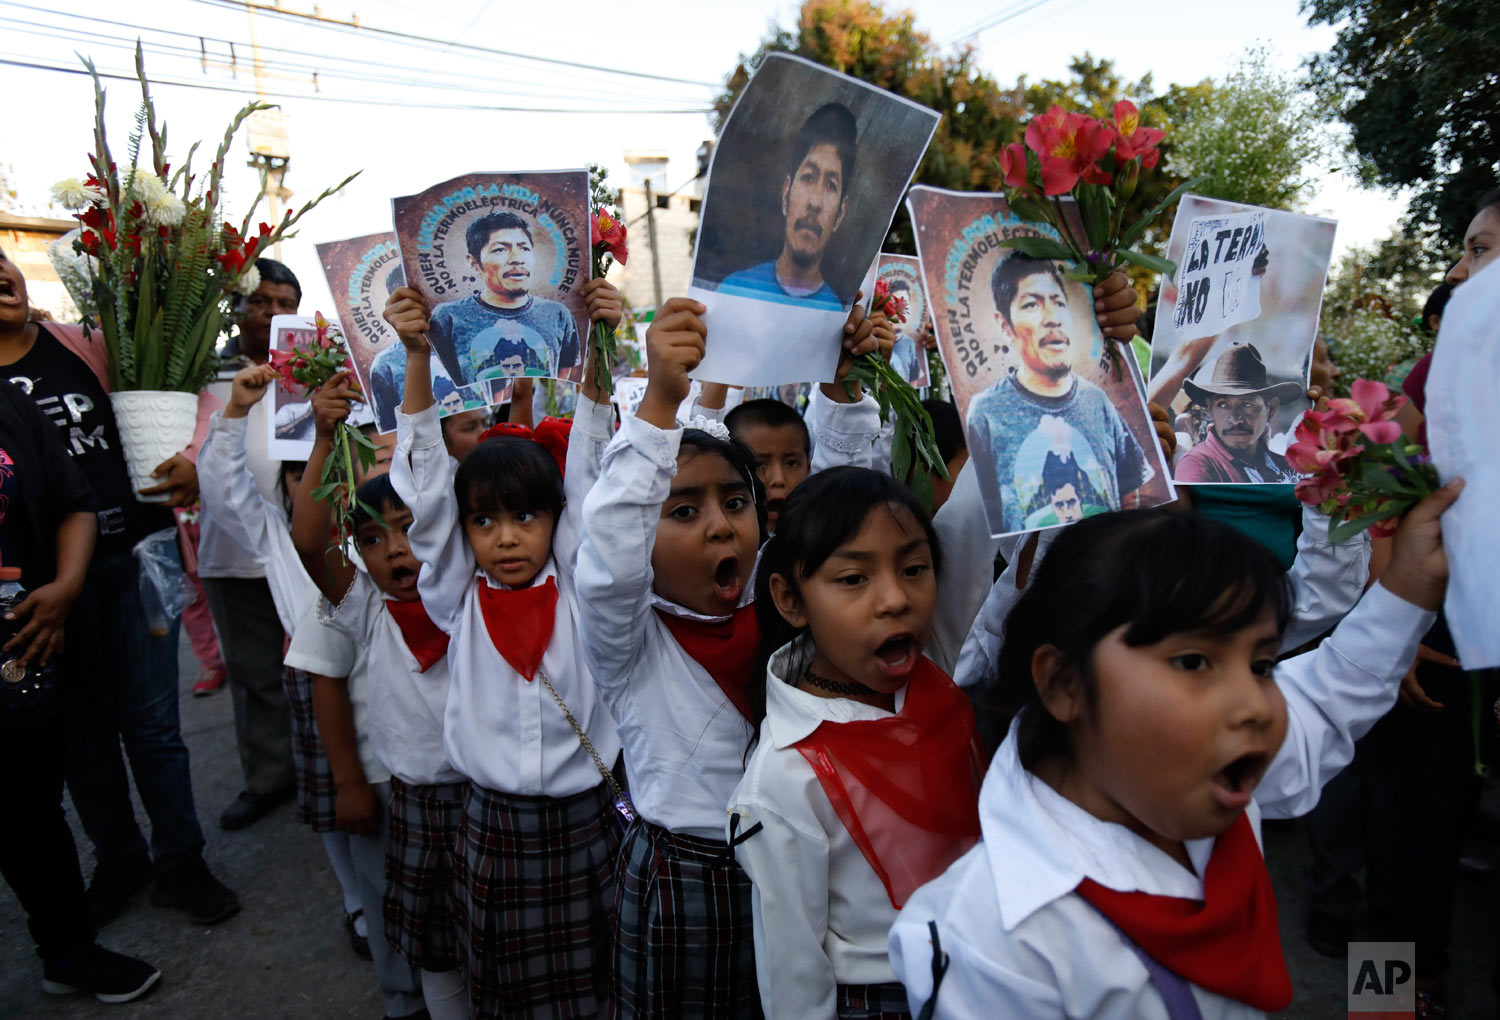 Children carry pictures of murdered community activist Samir Flores Soberanes as they accompany the coffin that contains his remains, in Amilcingo, Mexico, Feb. 21, 2019. (AP Photo/Rebecca Blackwell)